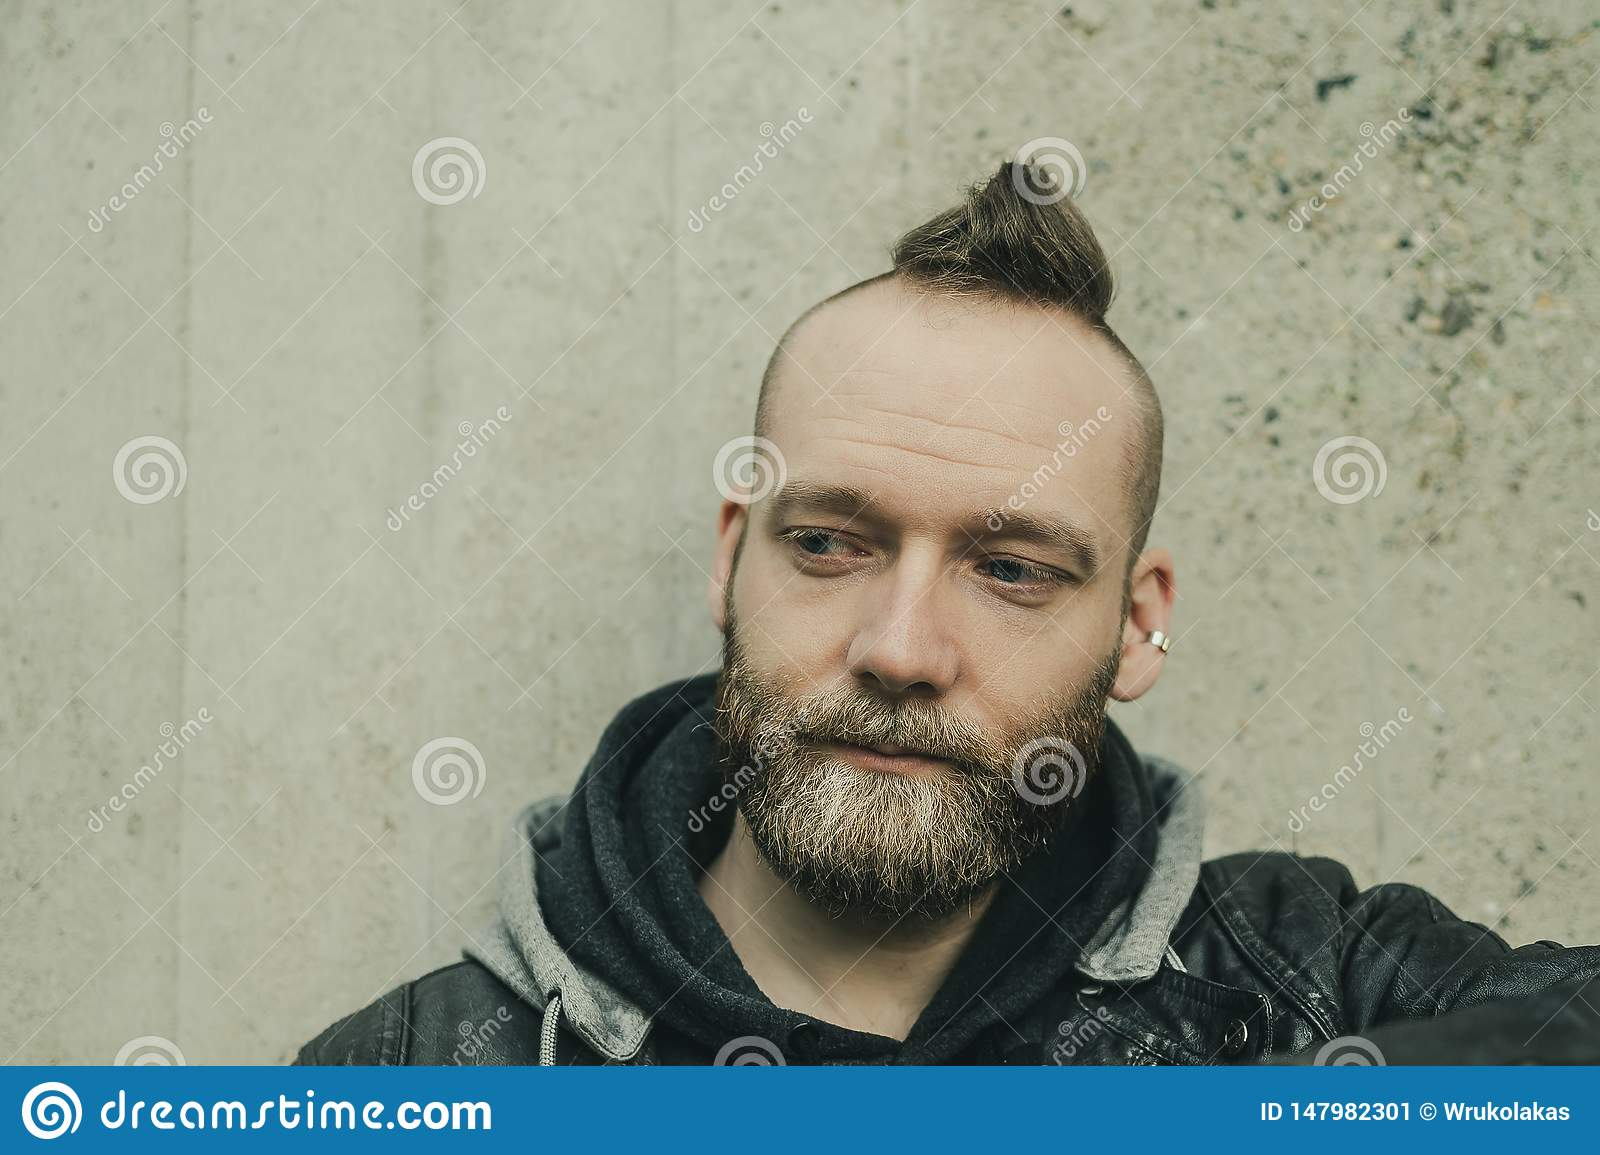 A man with mohawk is looking down in front of the camera